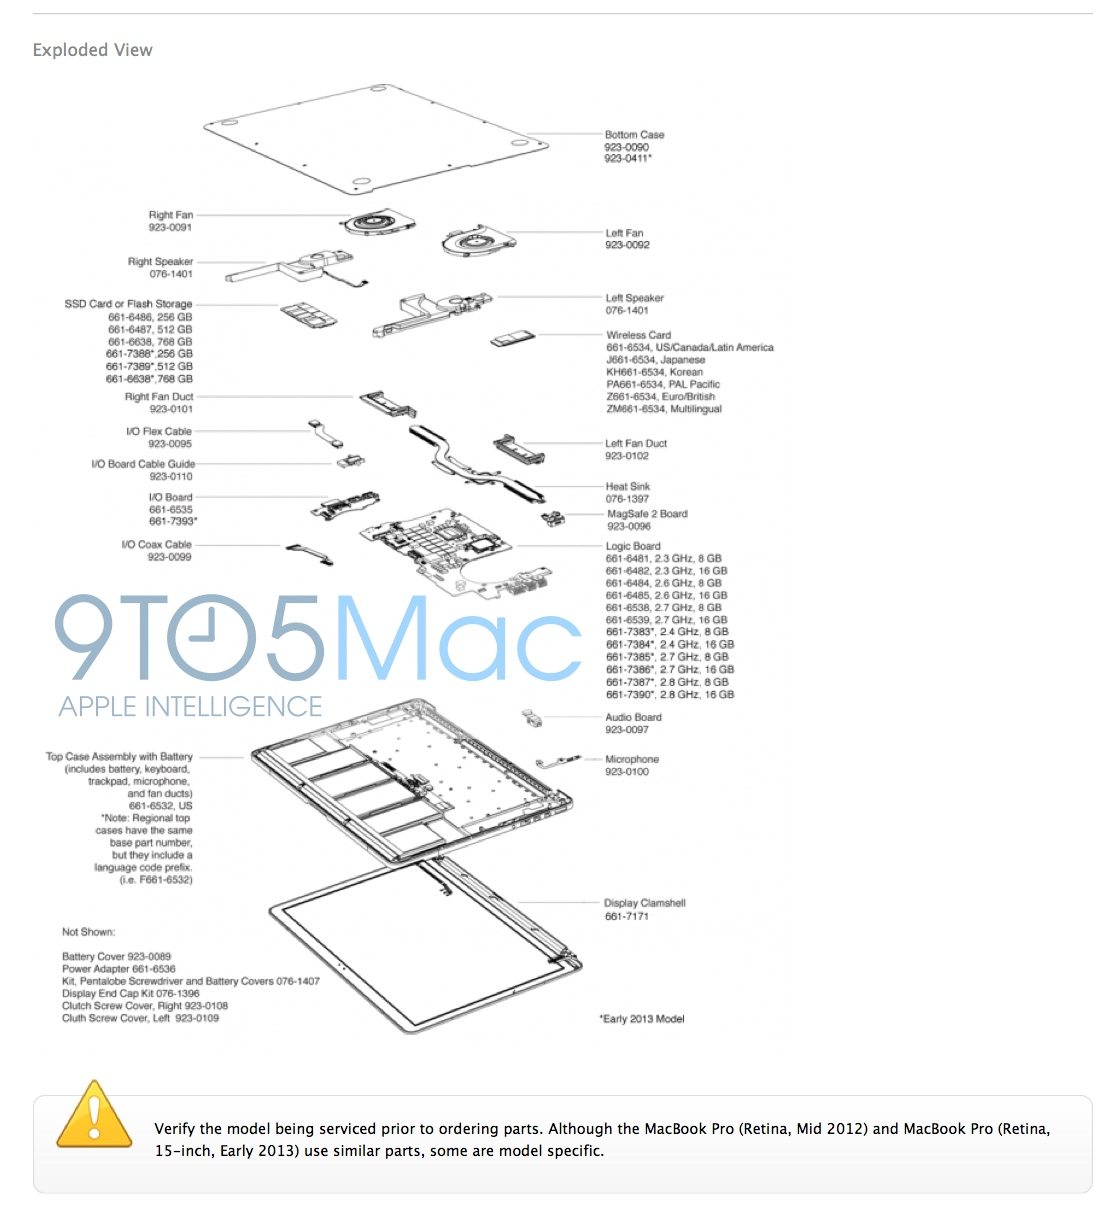 New Model (Early 2013) Retina MacBook Pros use some